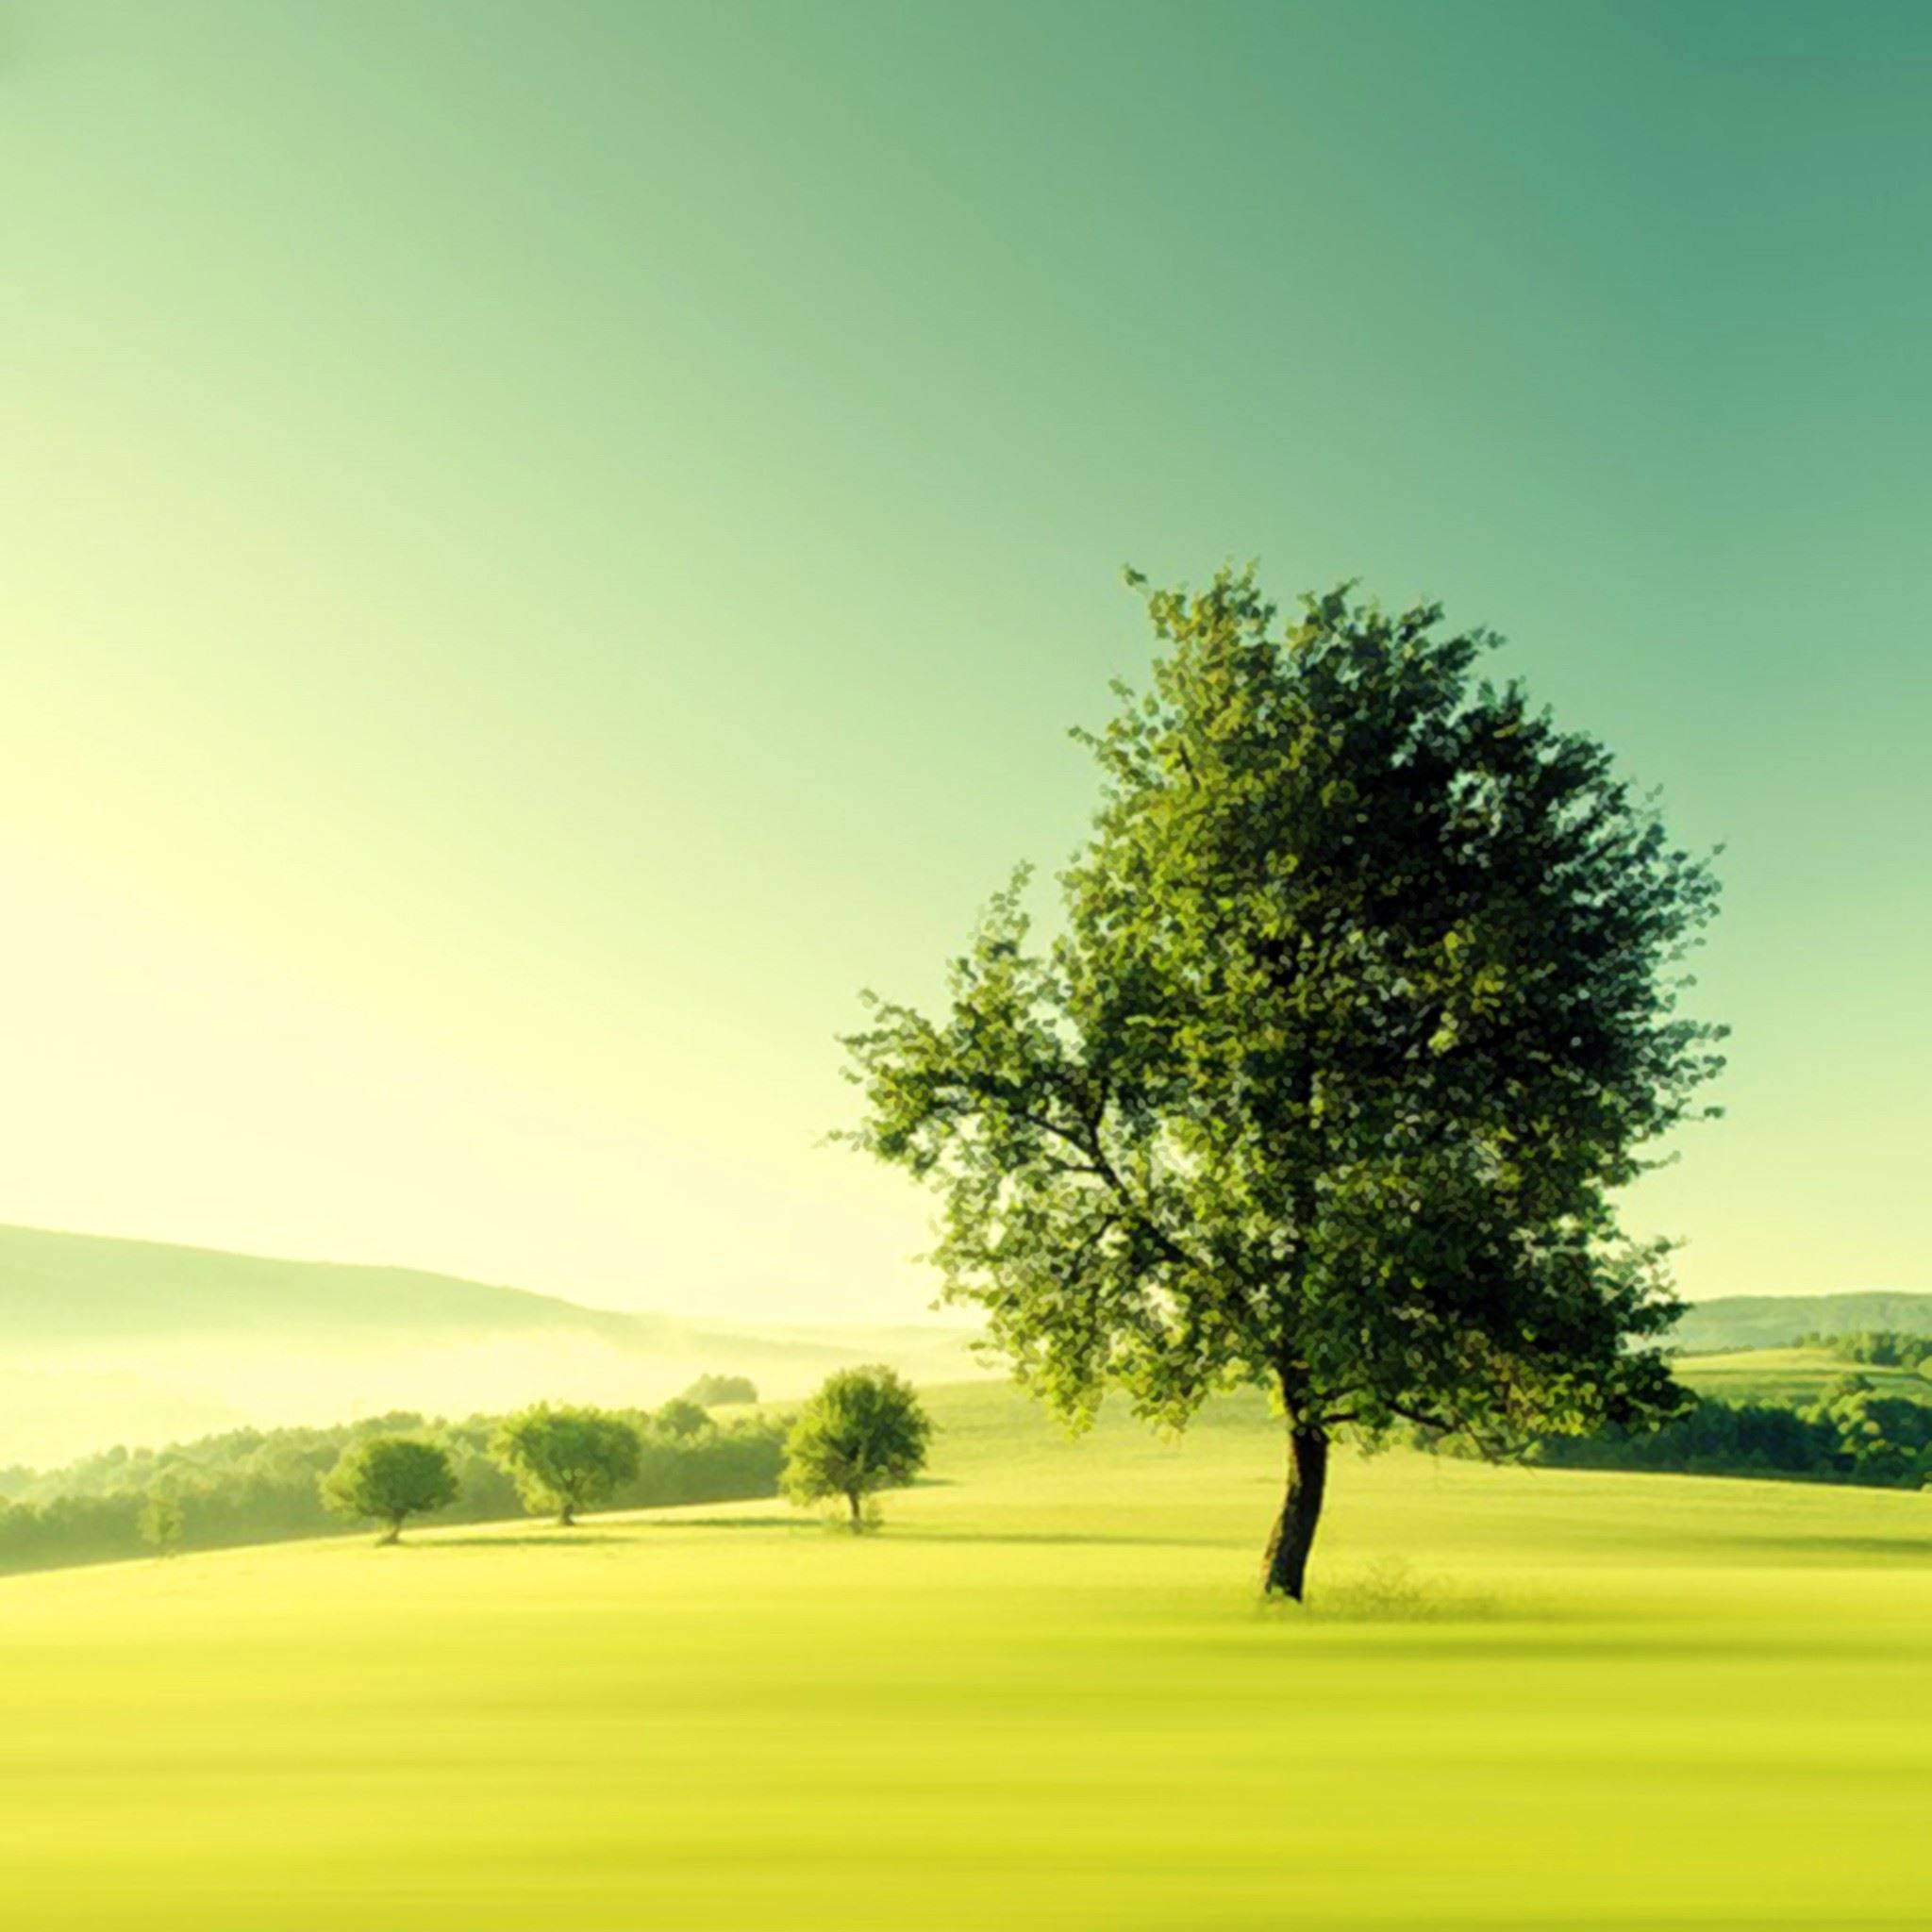 Nature Lonely Tree Plain Field IPad Air Wallpapers Free Download